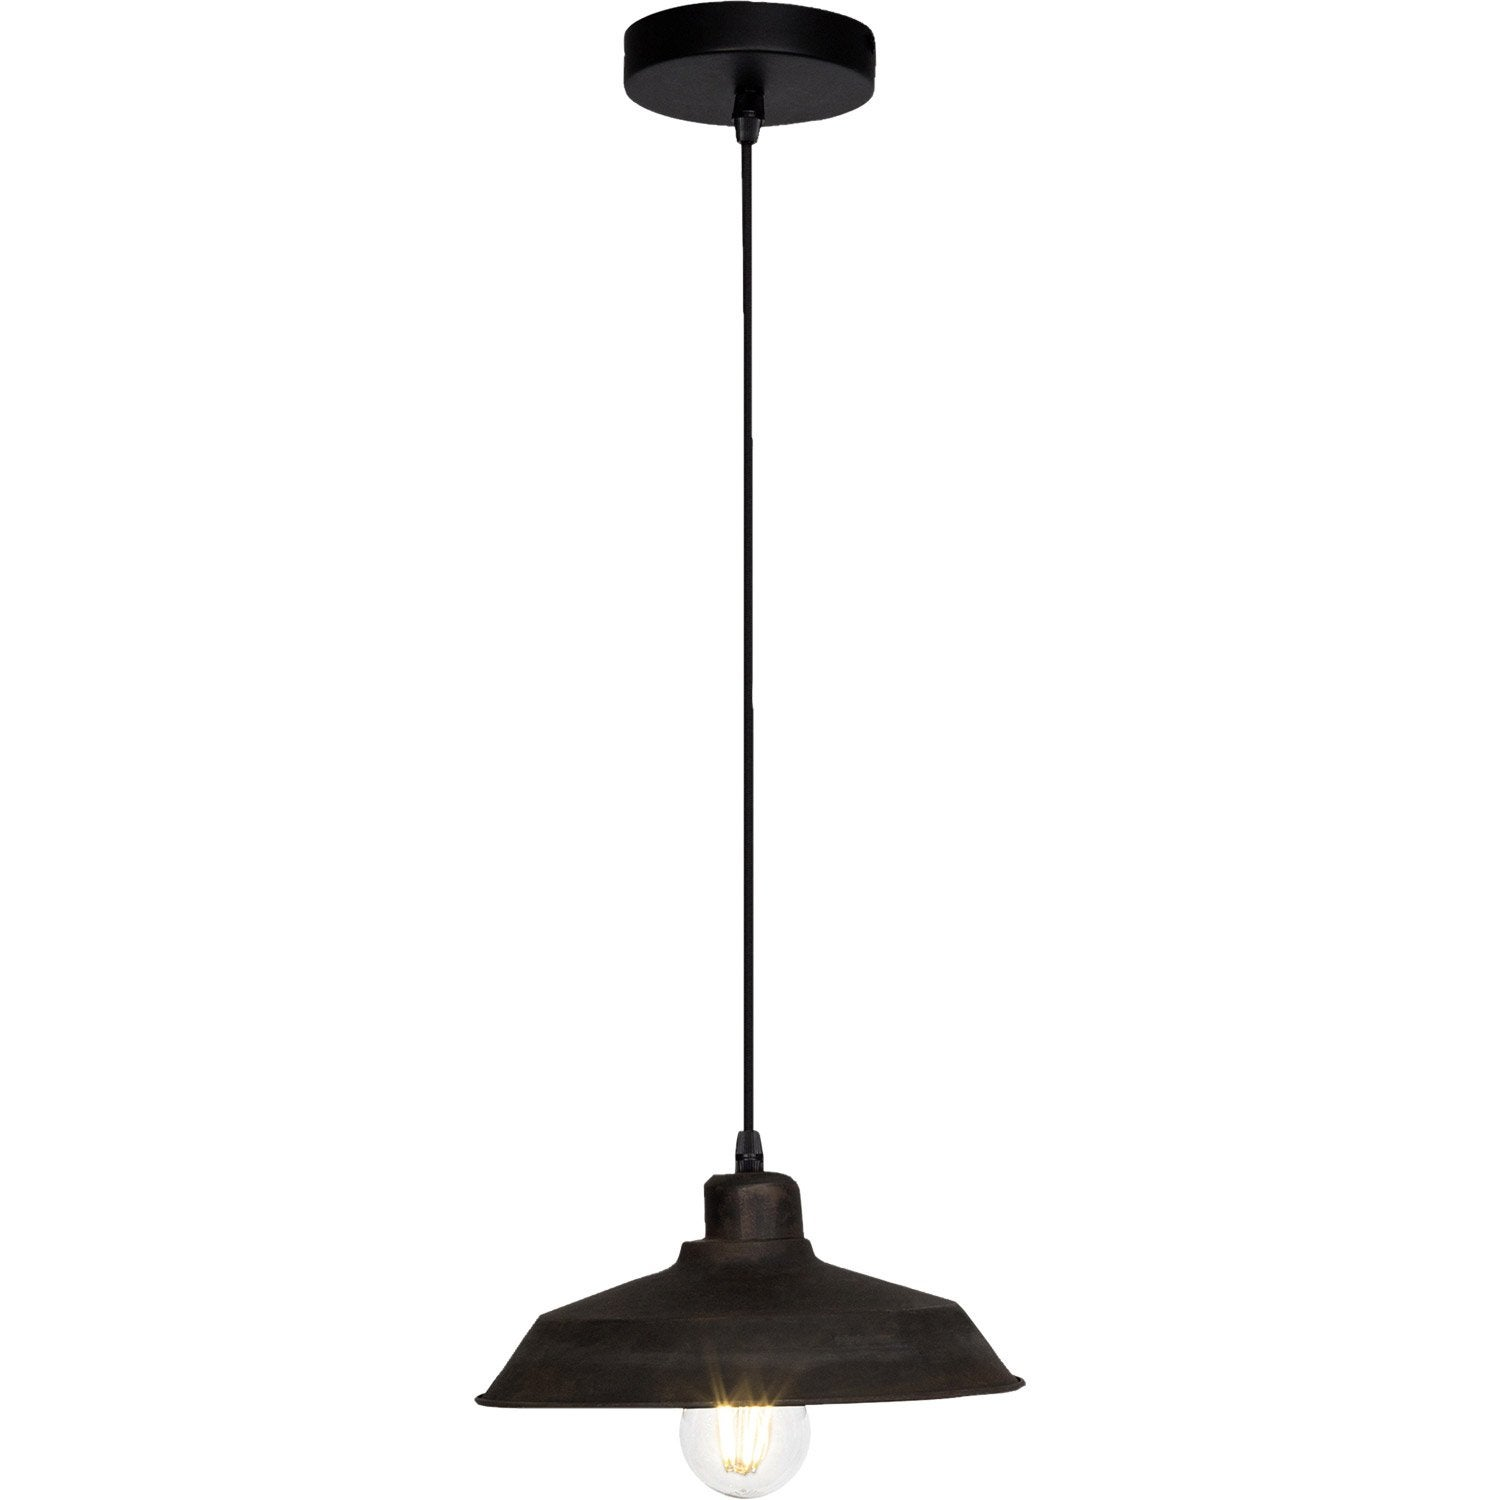 Suspension e14 style industriel dirt m tal rouille 1 x 60 - Suspension metal style industriel ...